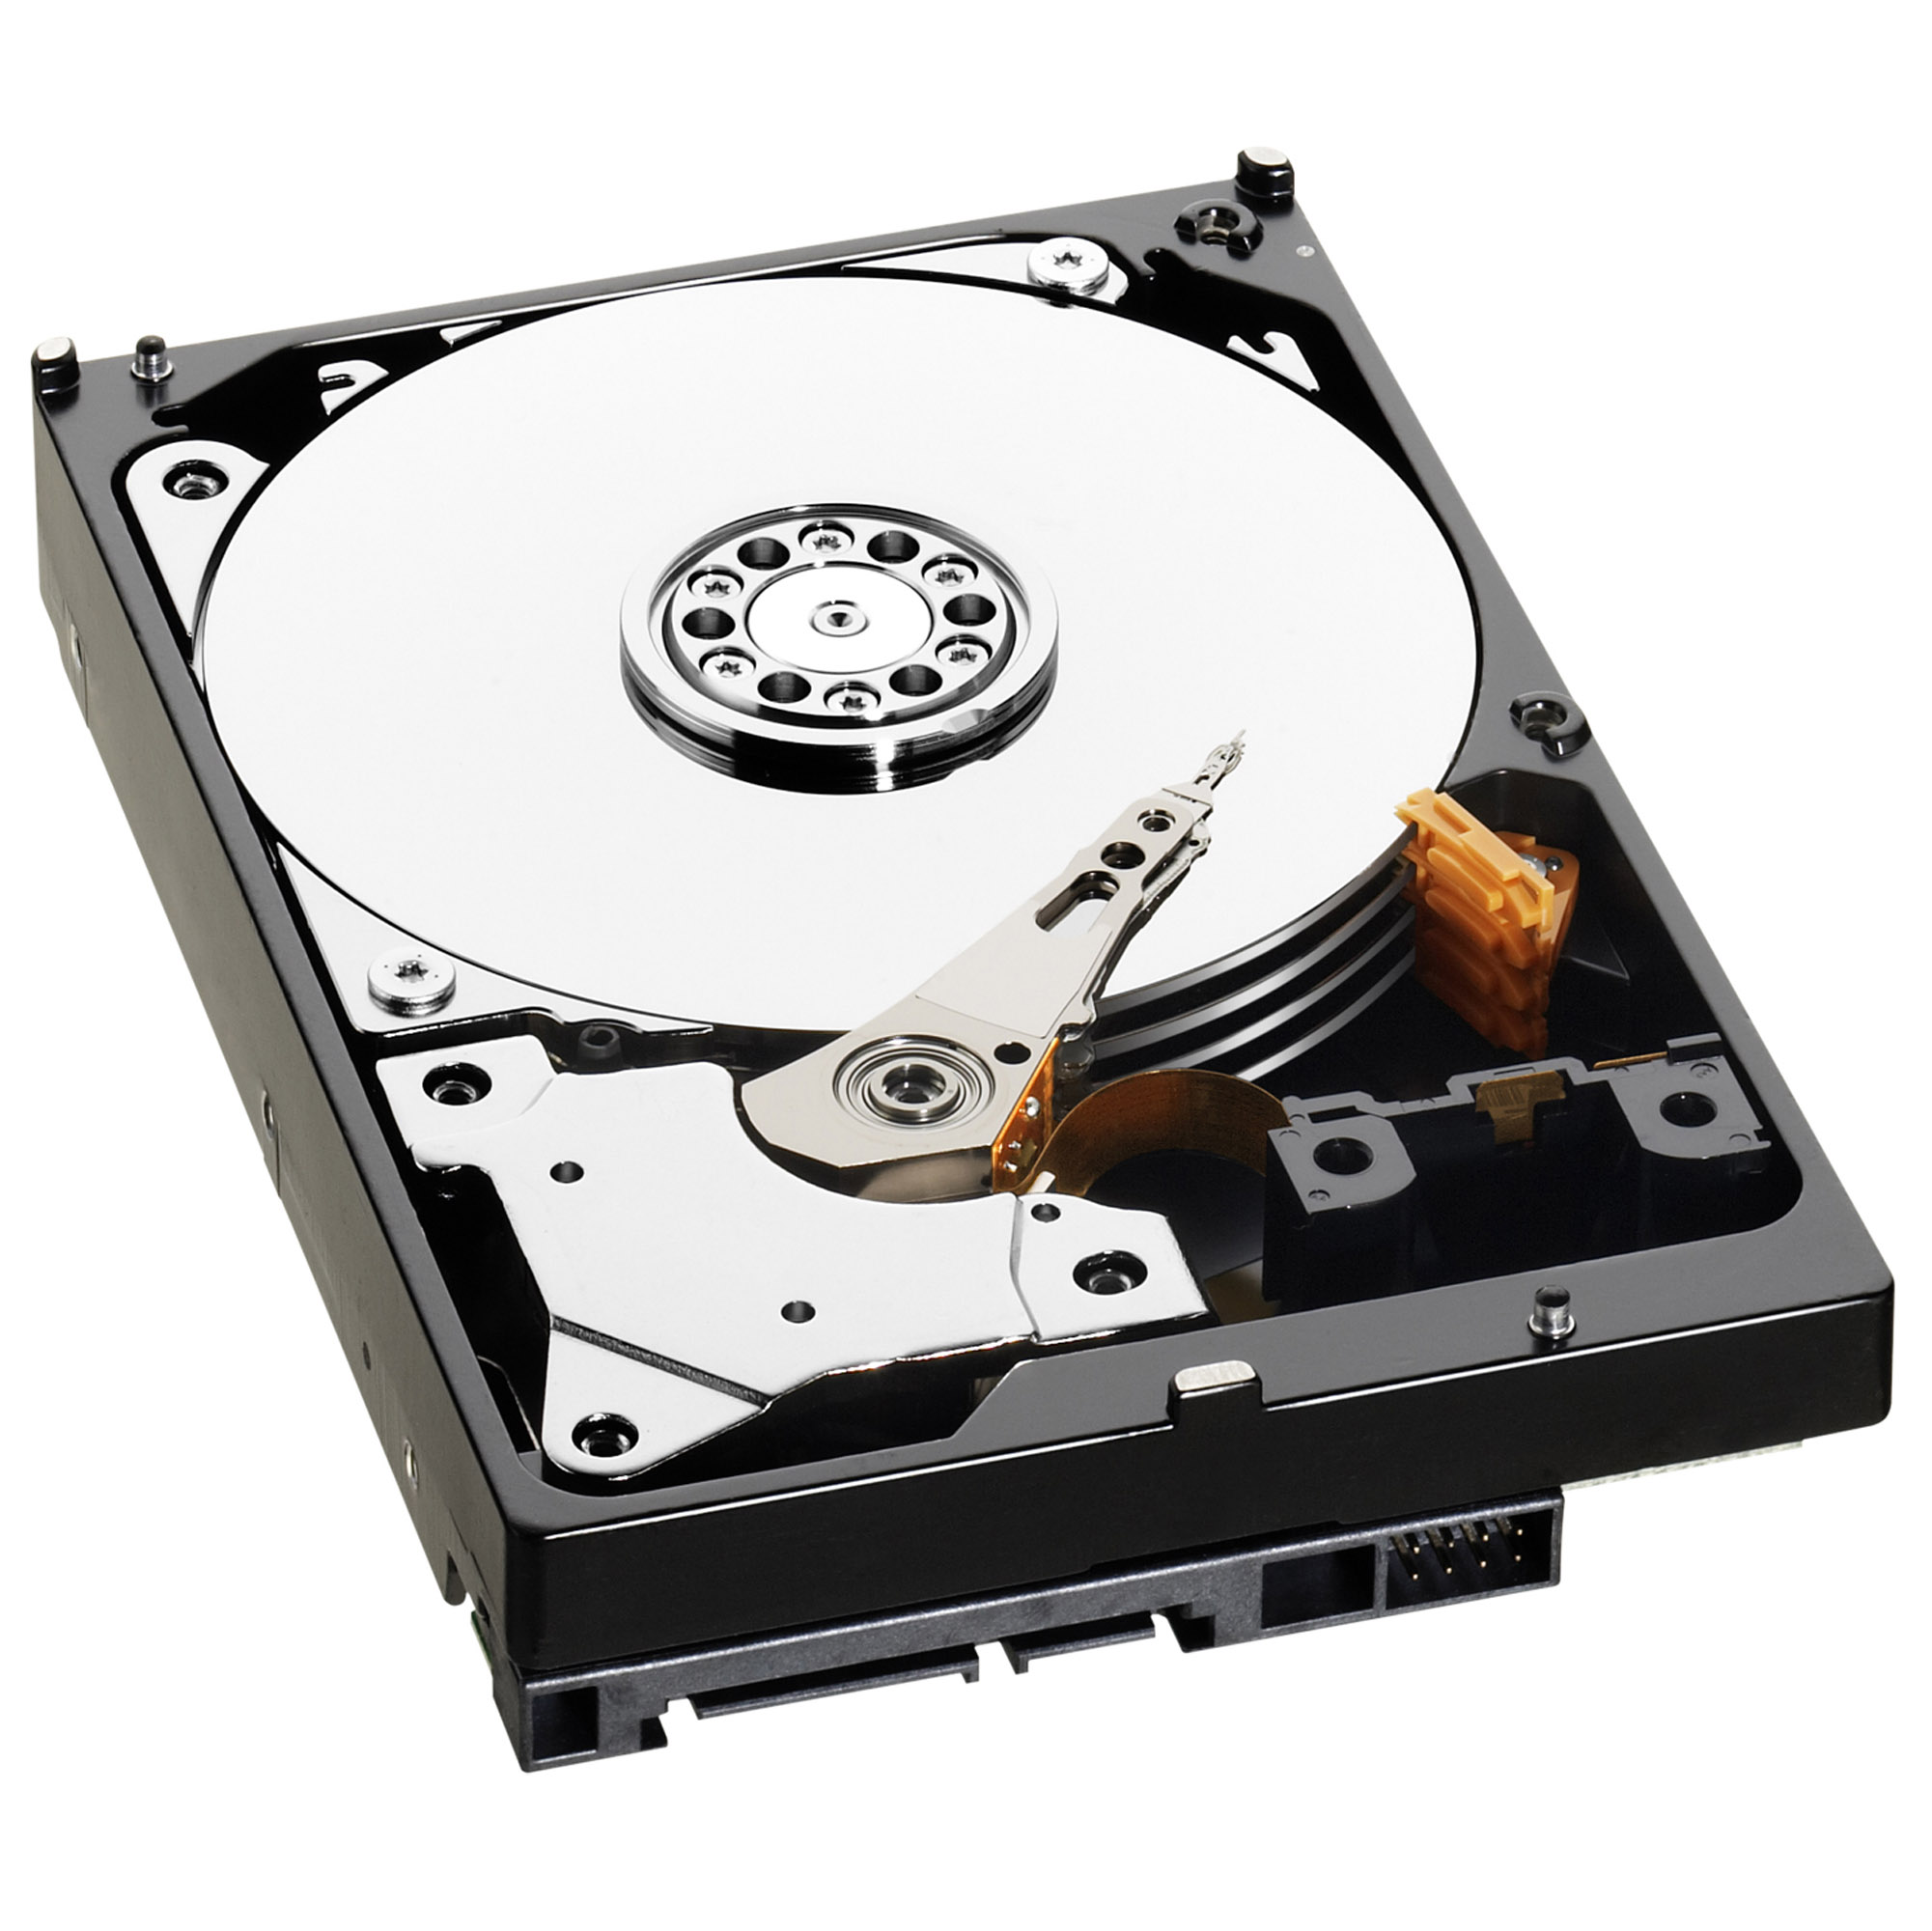 Five tips for restoring an unbootable hard drive